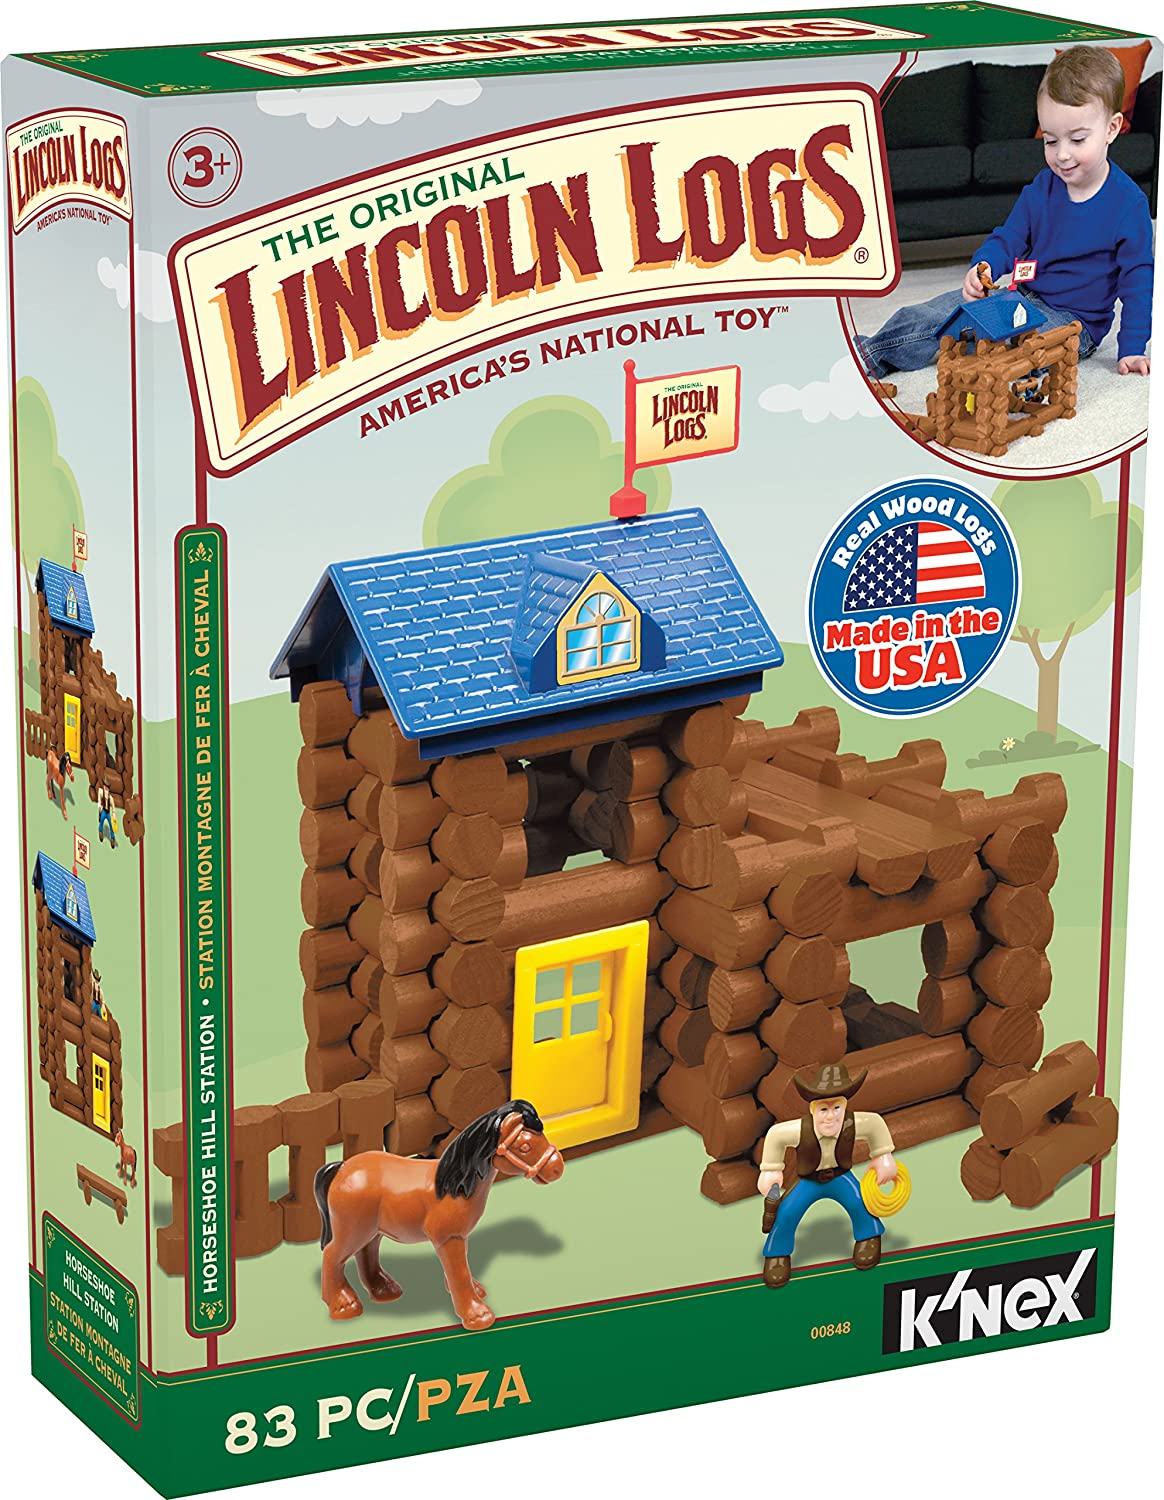 LINCOLN LOGS – Horseshoe Hill Station – 83 Pieces – Ages 3+ Preschool Education Toy K'NEX 848